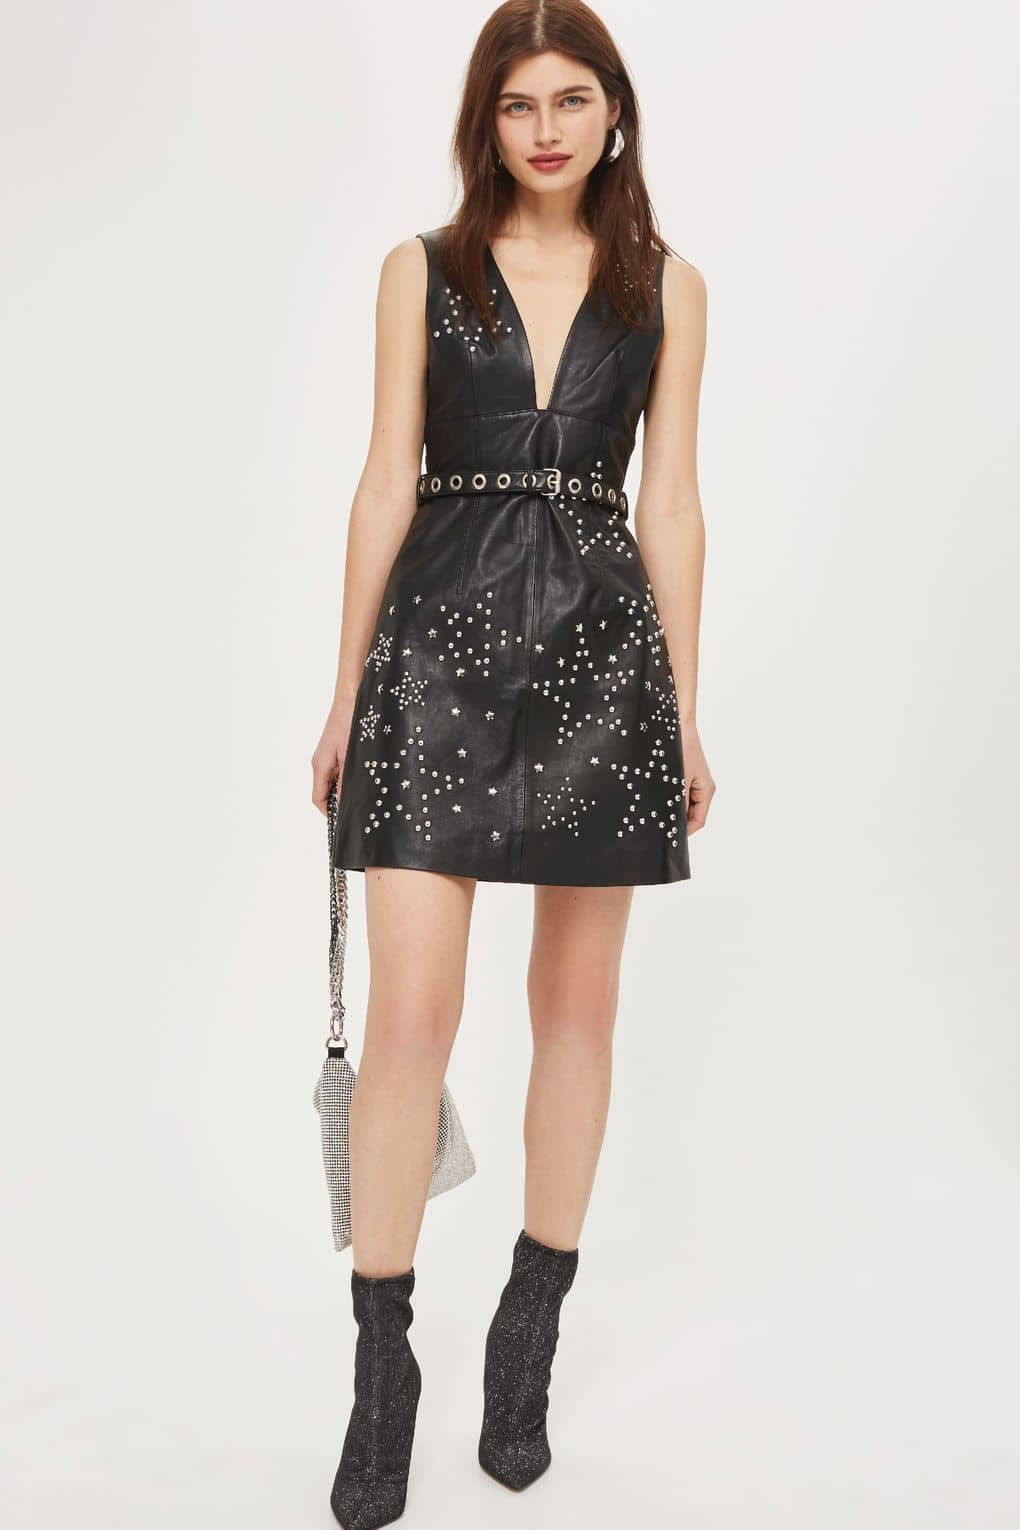 TOP SHOP **Star Studded Leather Mini Shift Black Dress